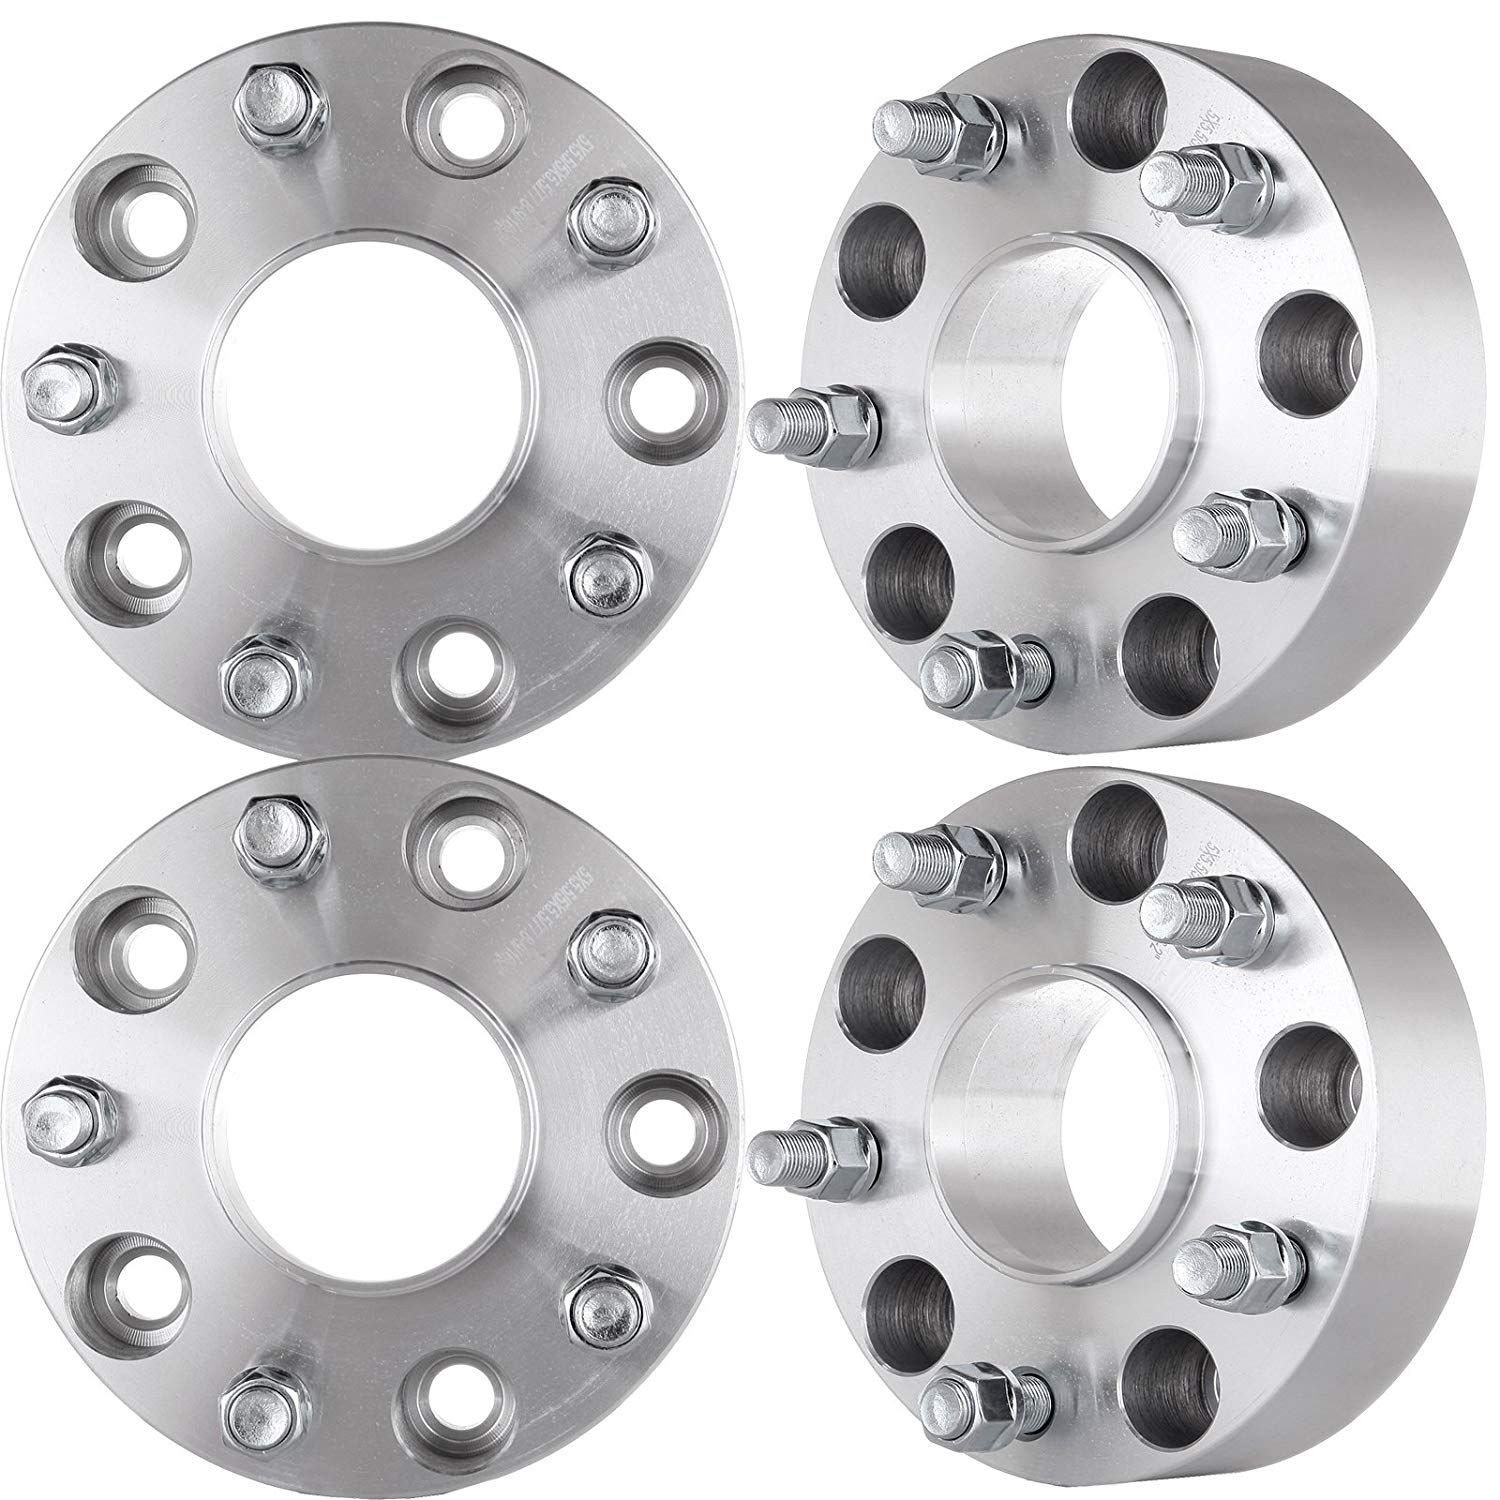 5x5 5 Wheel Spacers Eccpp 5 Lug Wheel Spacers Adapter 2 5x5 5 To 5x5 5 9 16 Studs Fits Dodge Ram 1500 Durango D Dodge Ram Accessories Ram 1500 Ram Accessories